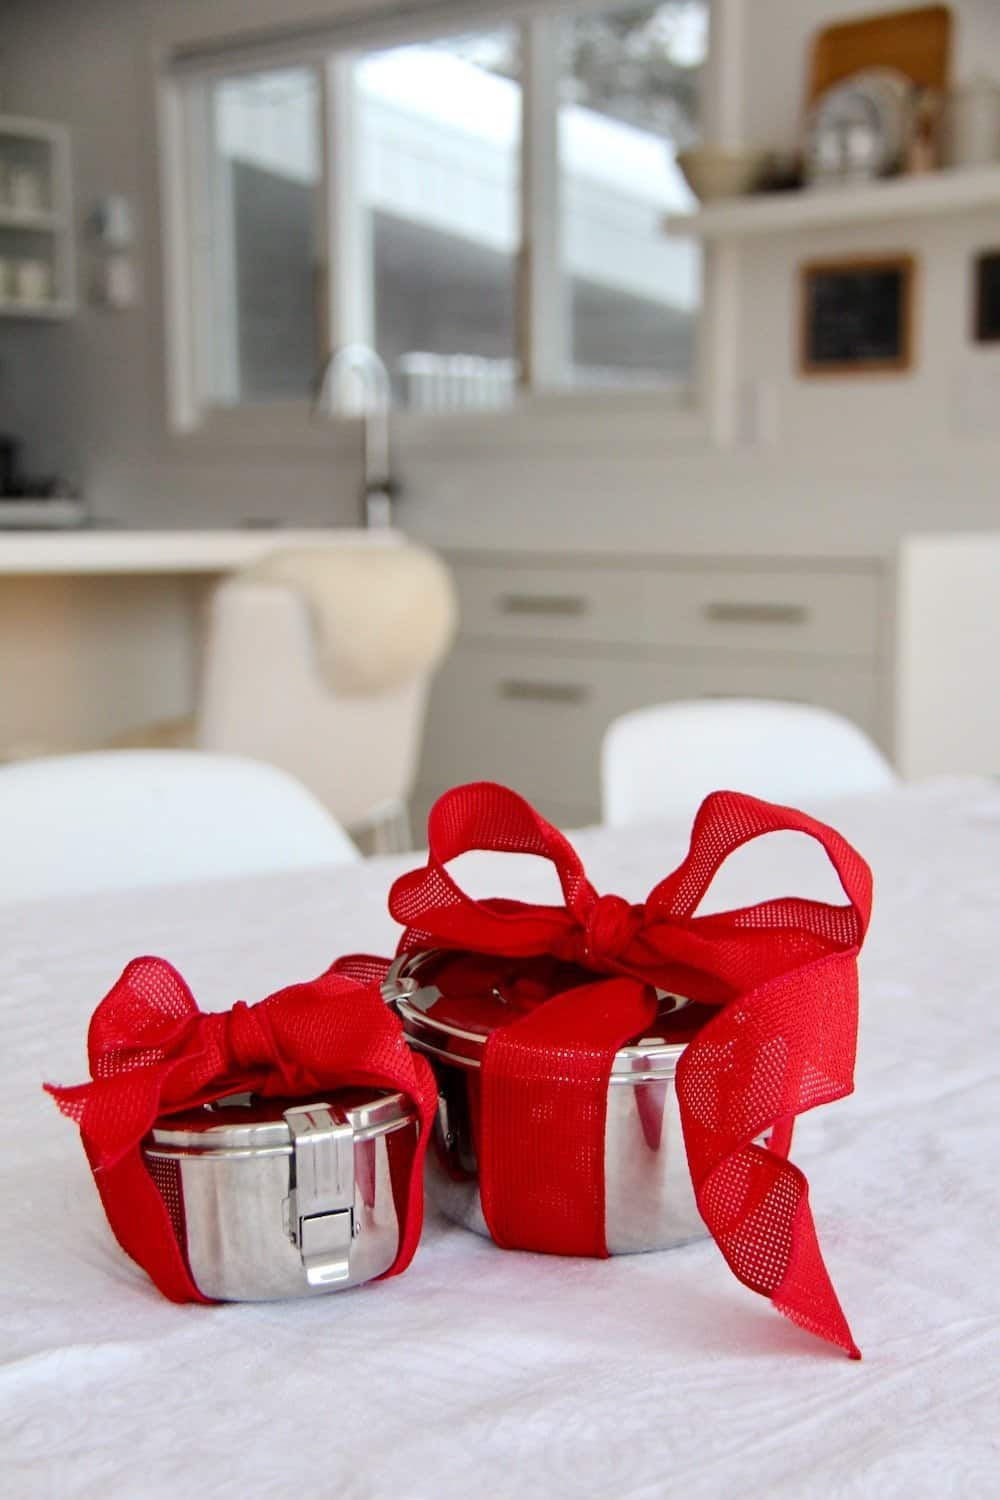 Two round micro green containers wrapped in red valentines ribbon for a DIY Valentines gift